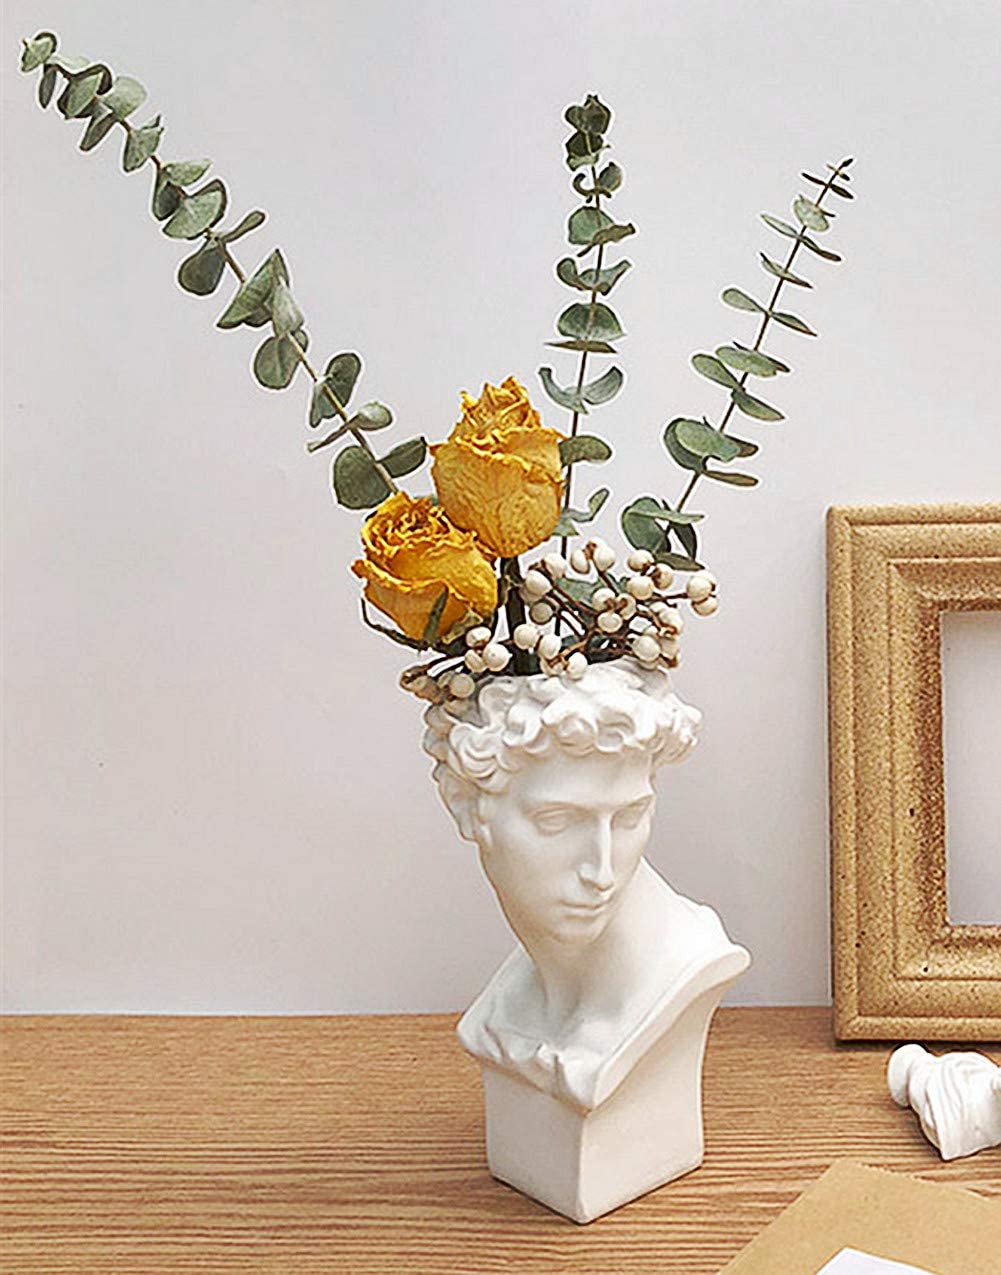 FunSpace Greek Roman Style Statue Flowers Vase Succulent Planter - Makeup Brushes Container Pen Holder - Great Gift for Home or Office Decoration (Giuliano-Small(6.7x3.5inch))